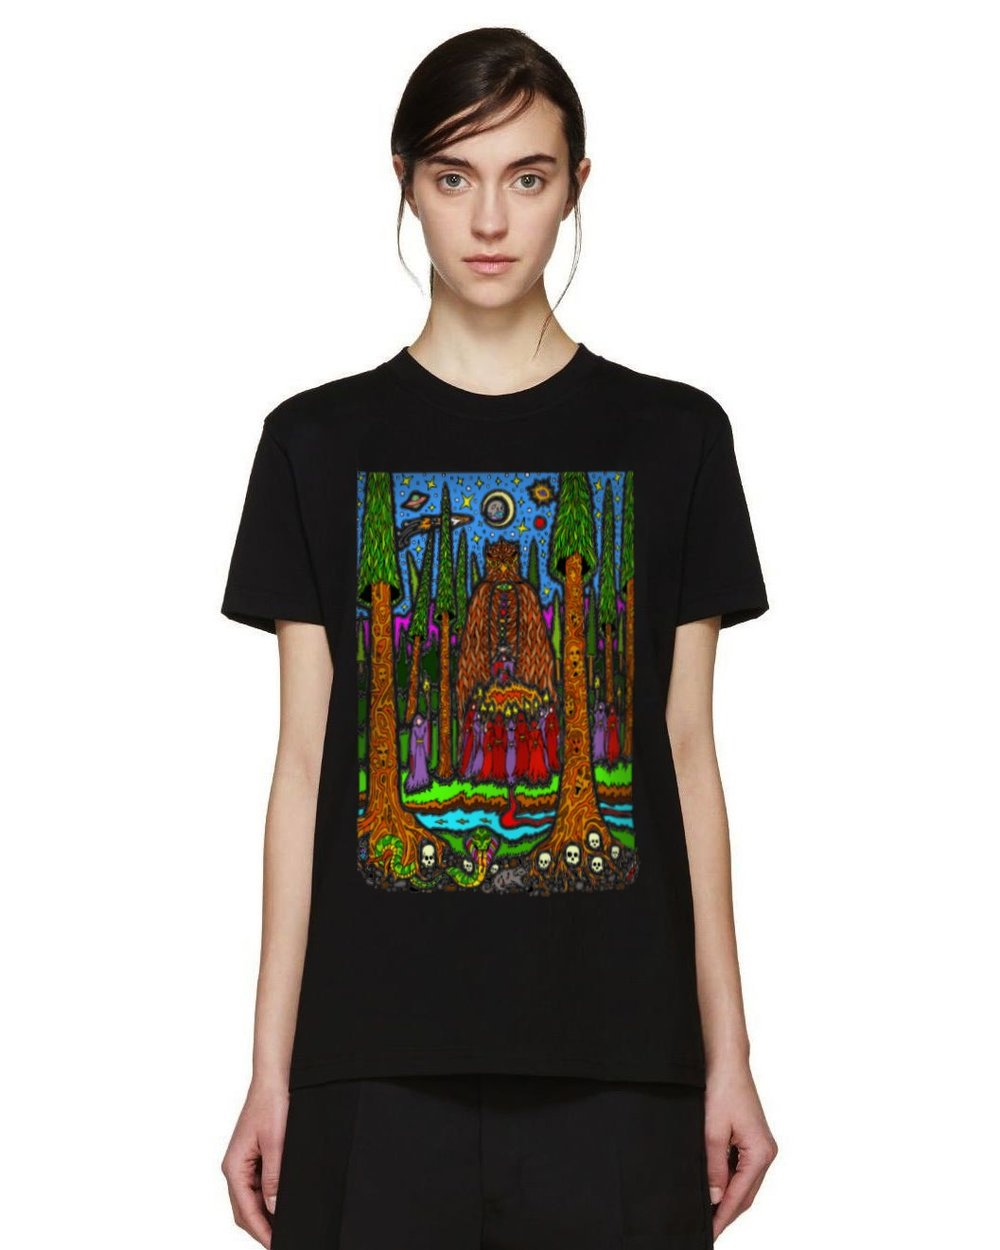 15-Off-White-Women-s-Black-Embroidered-T-Shirt-1 copy 3.jpg